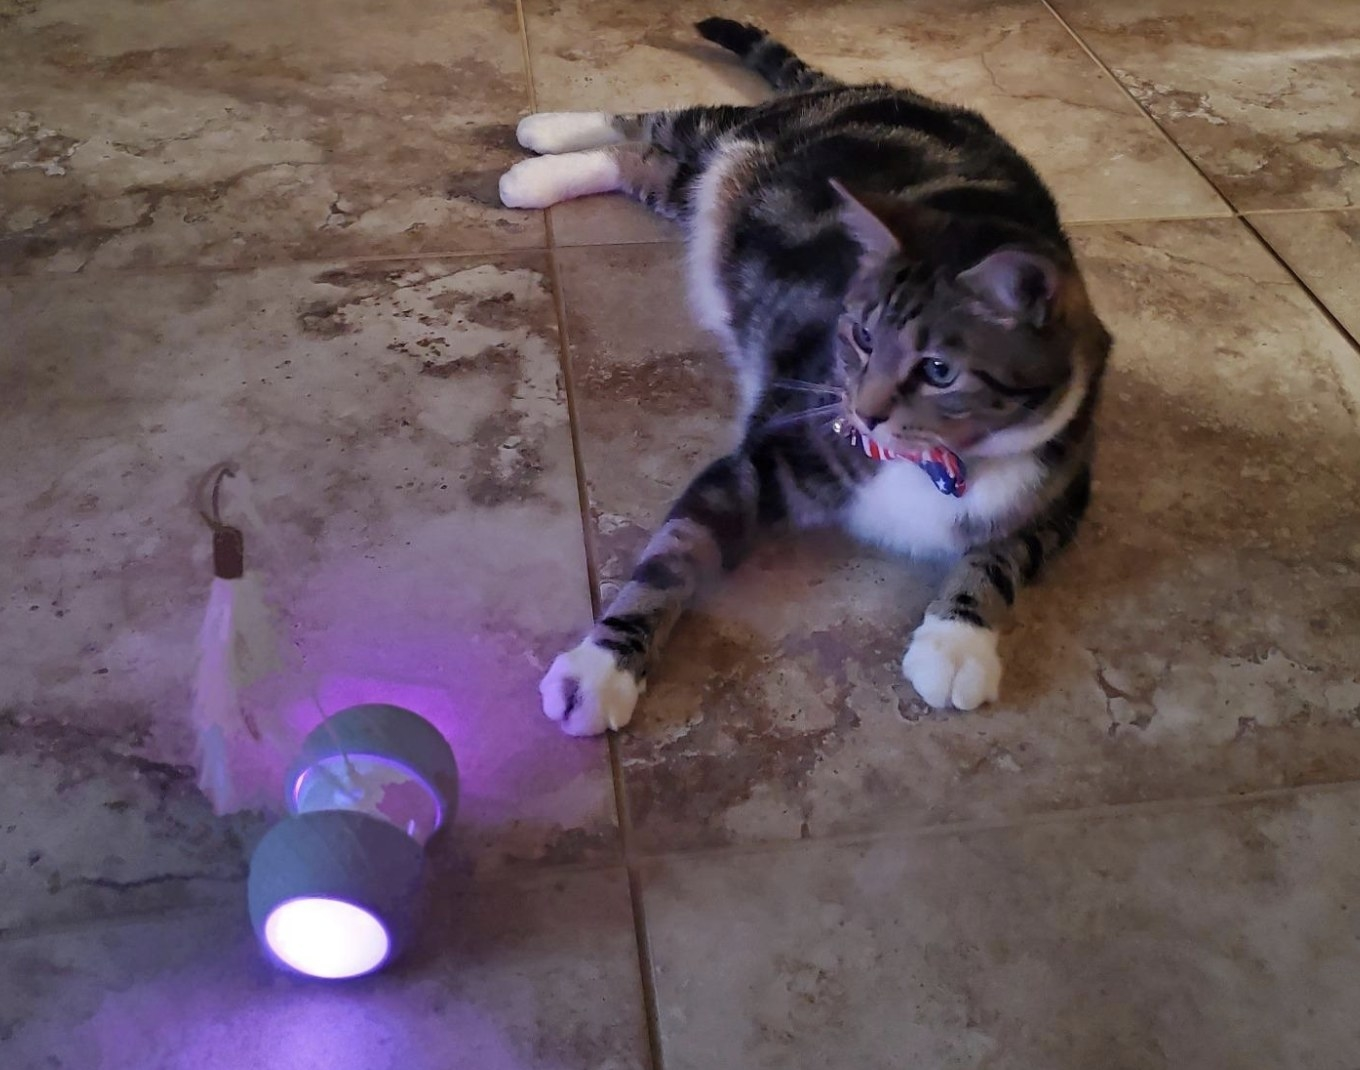 Cat staring at the lit-up remote control cat toy on the floor